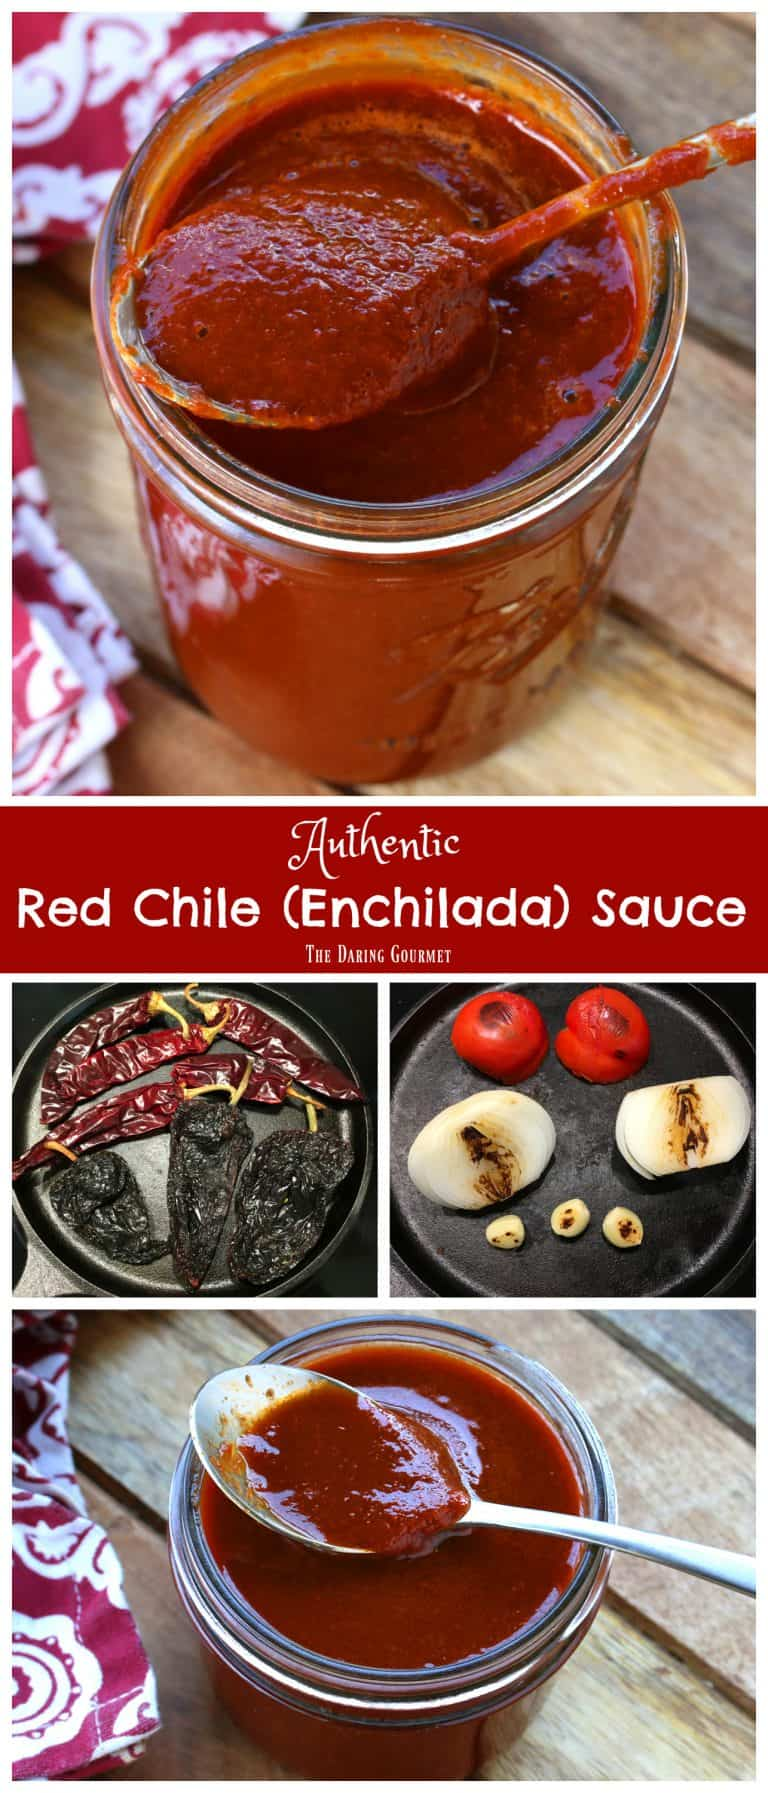 Best Authentic Enchilada Sauce The Daring Gourmet